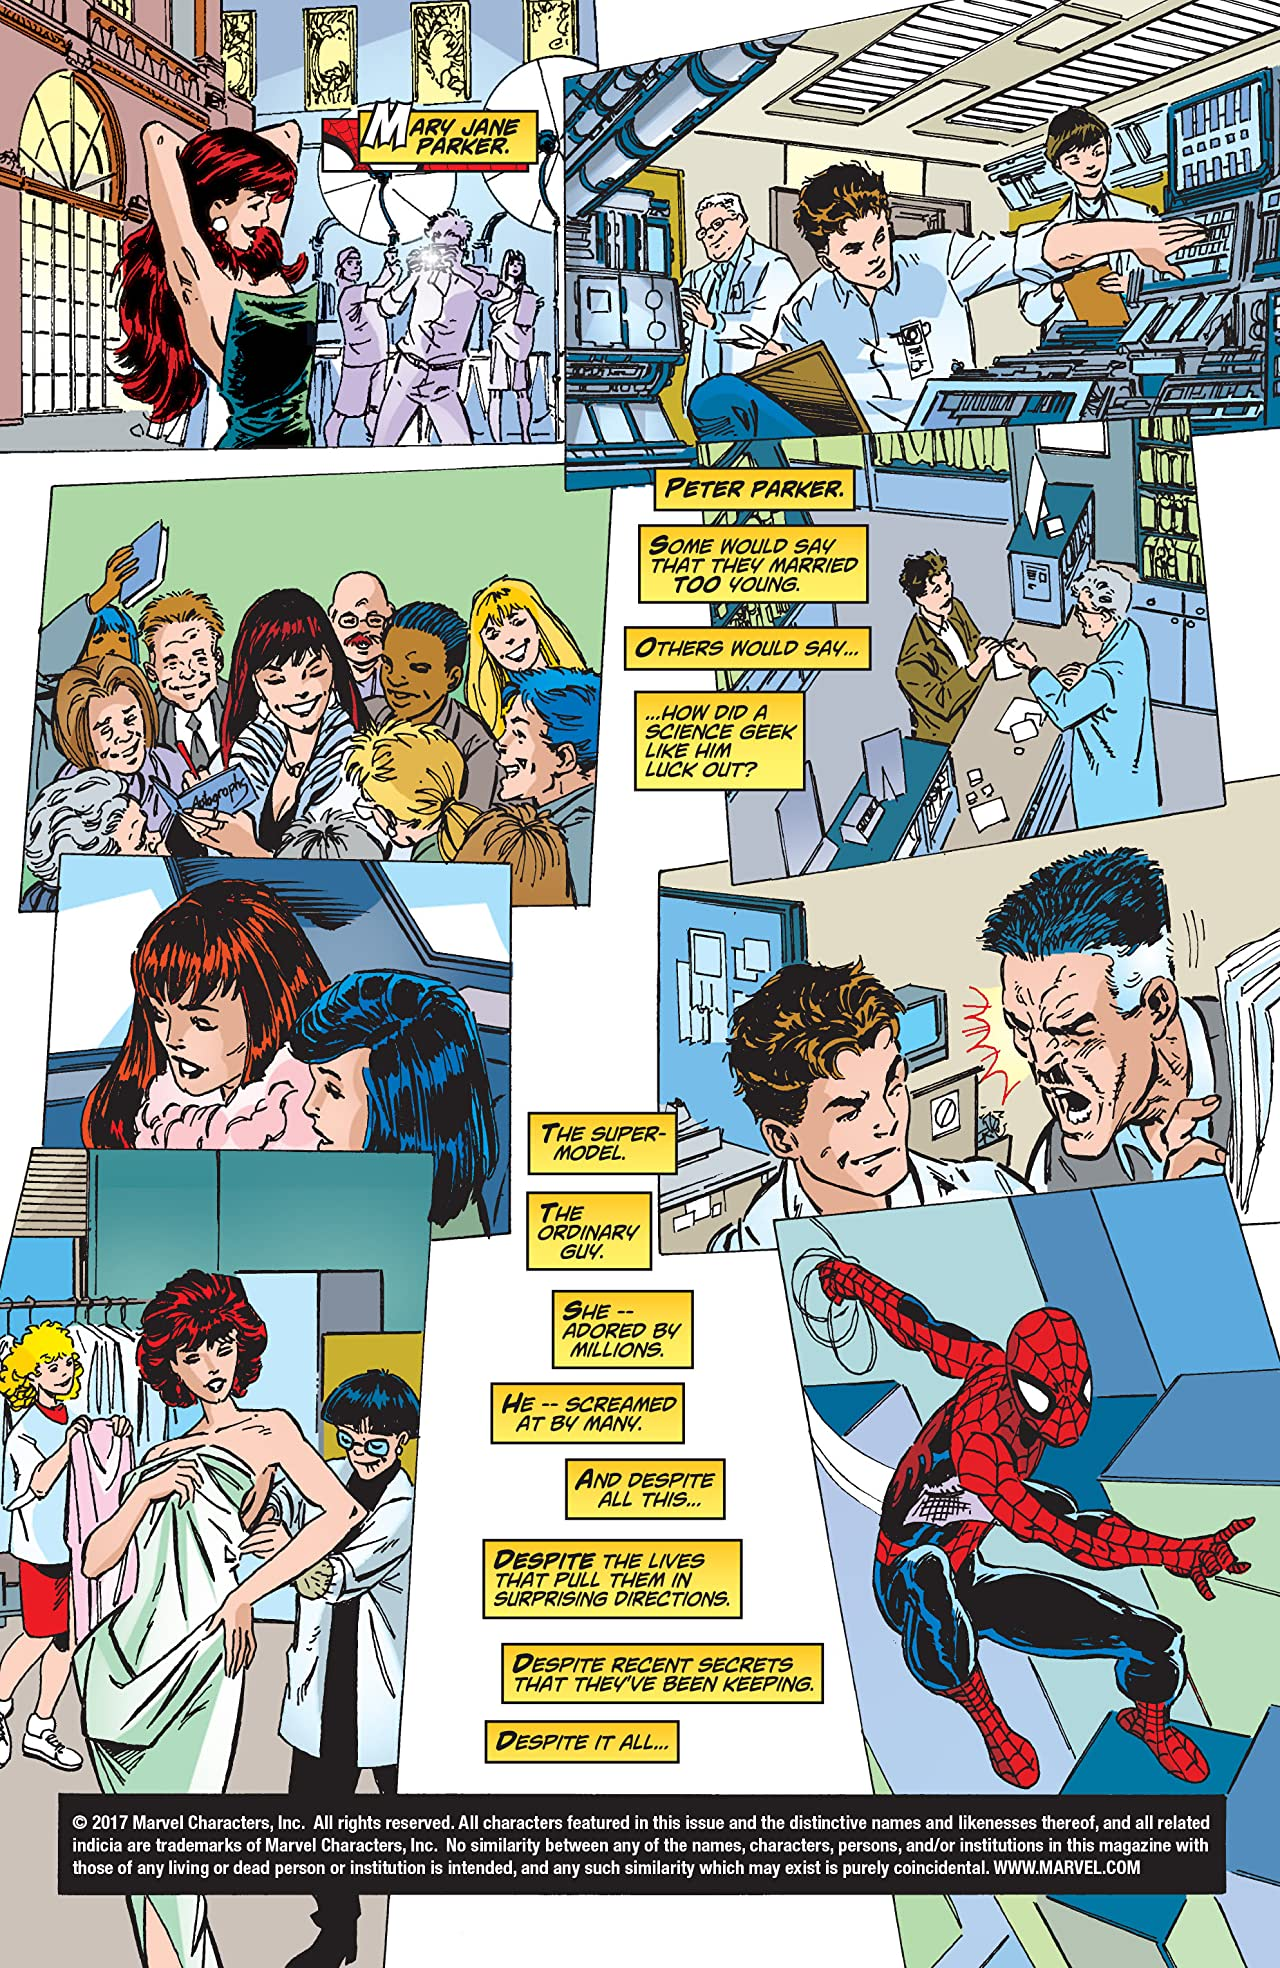 Amazing Spider-Man (1999-2013) #11